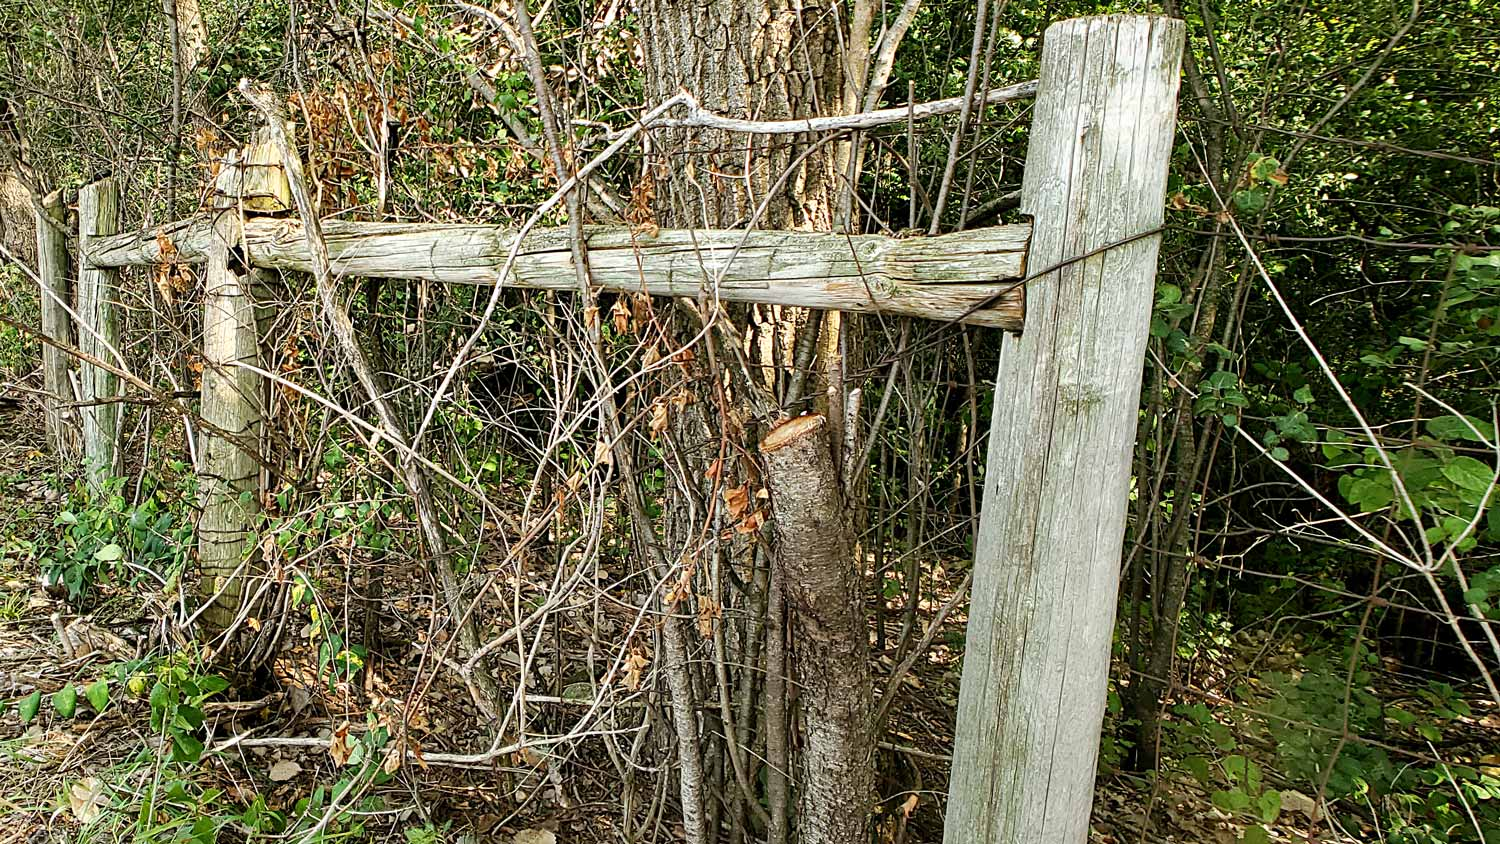 A weathered, long-standing fence line at The Hollows.